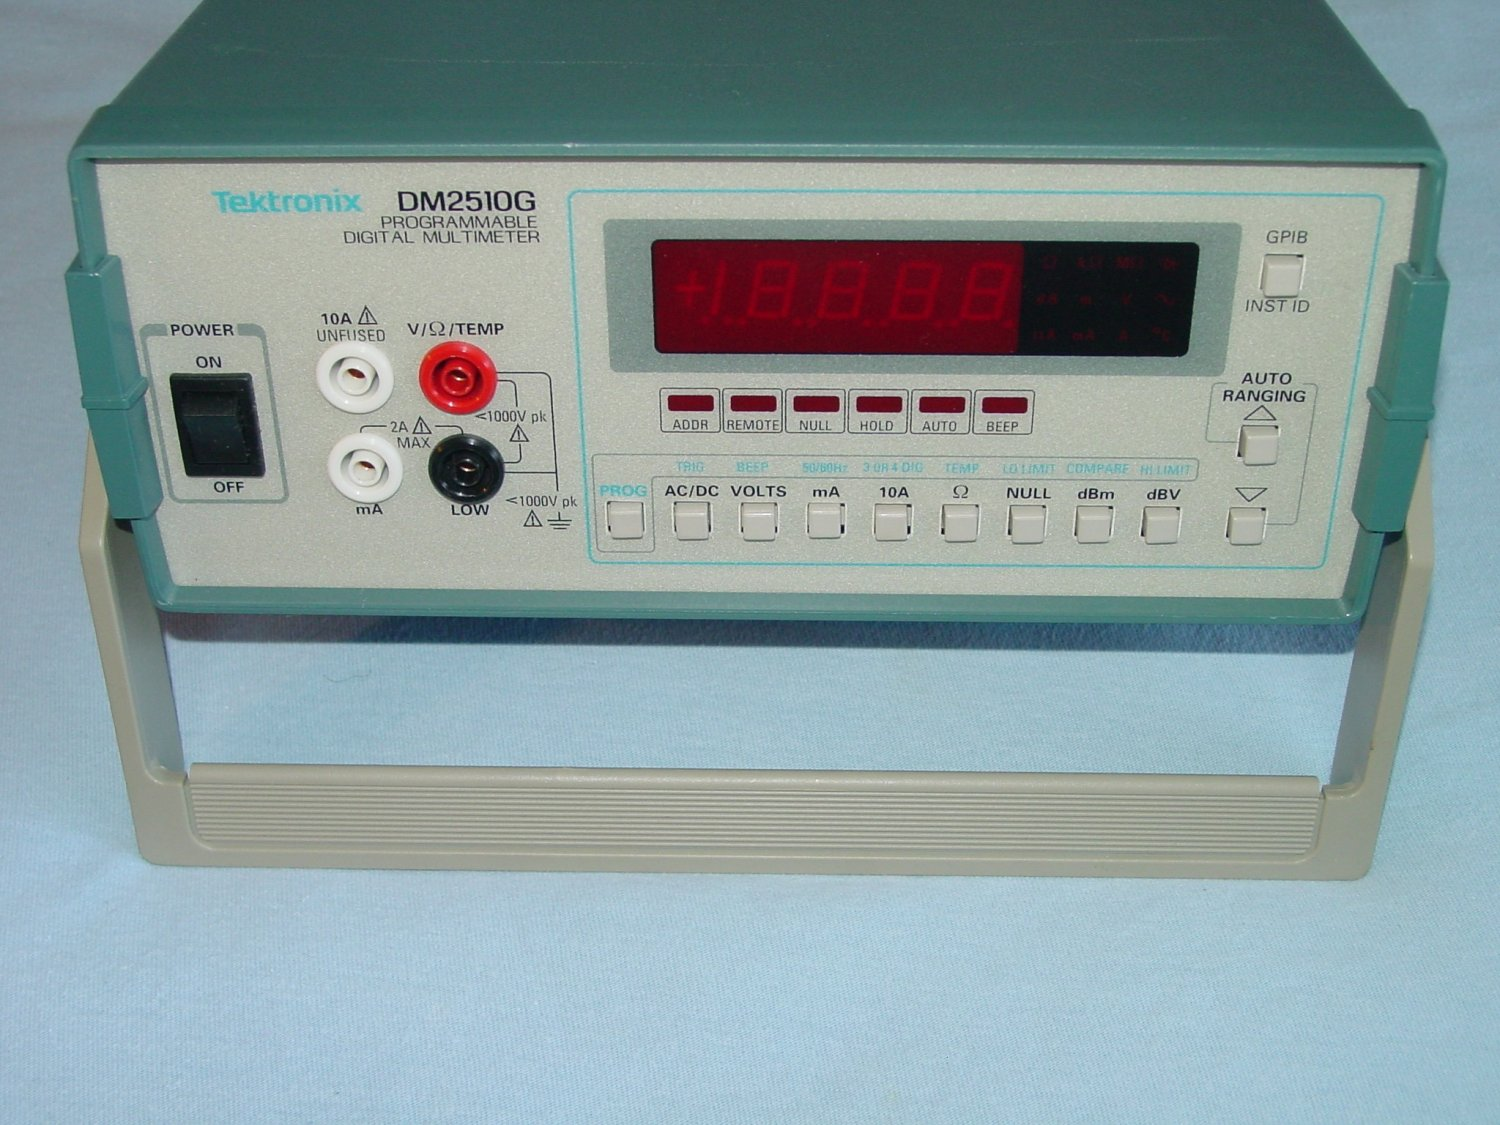 TEKTRONIX DM2510G PROGRAMMABLE DIGITAL MULTIMETER